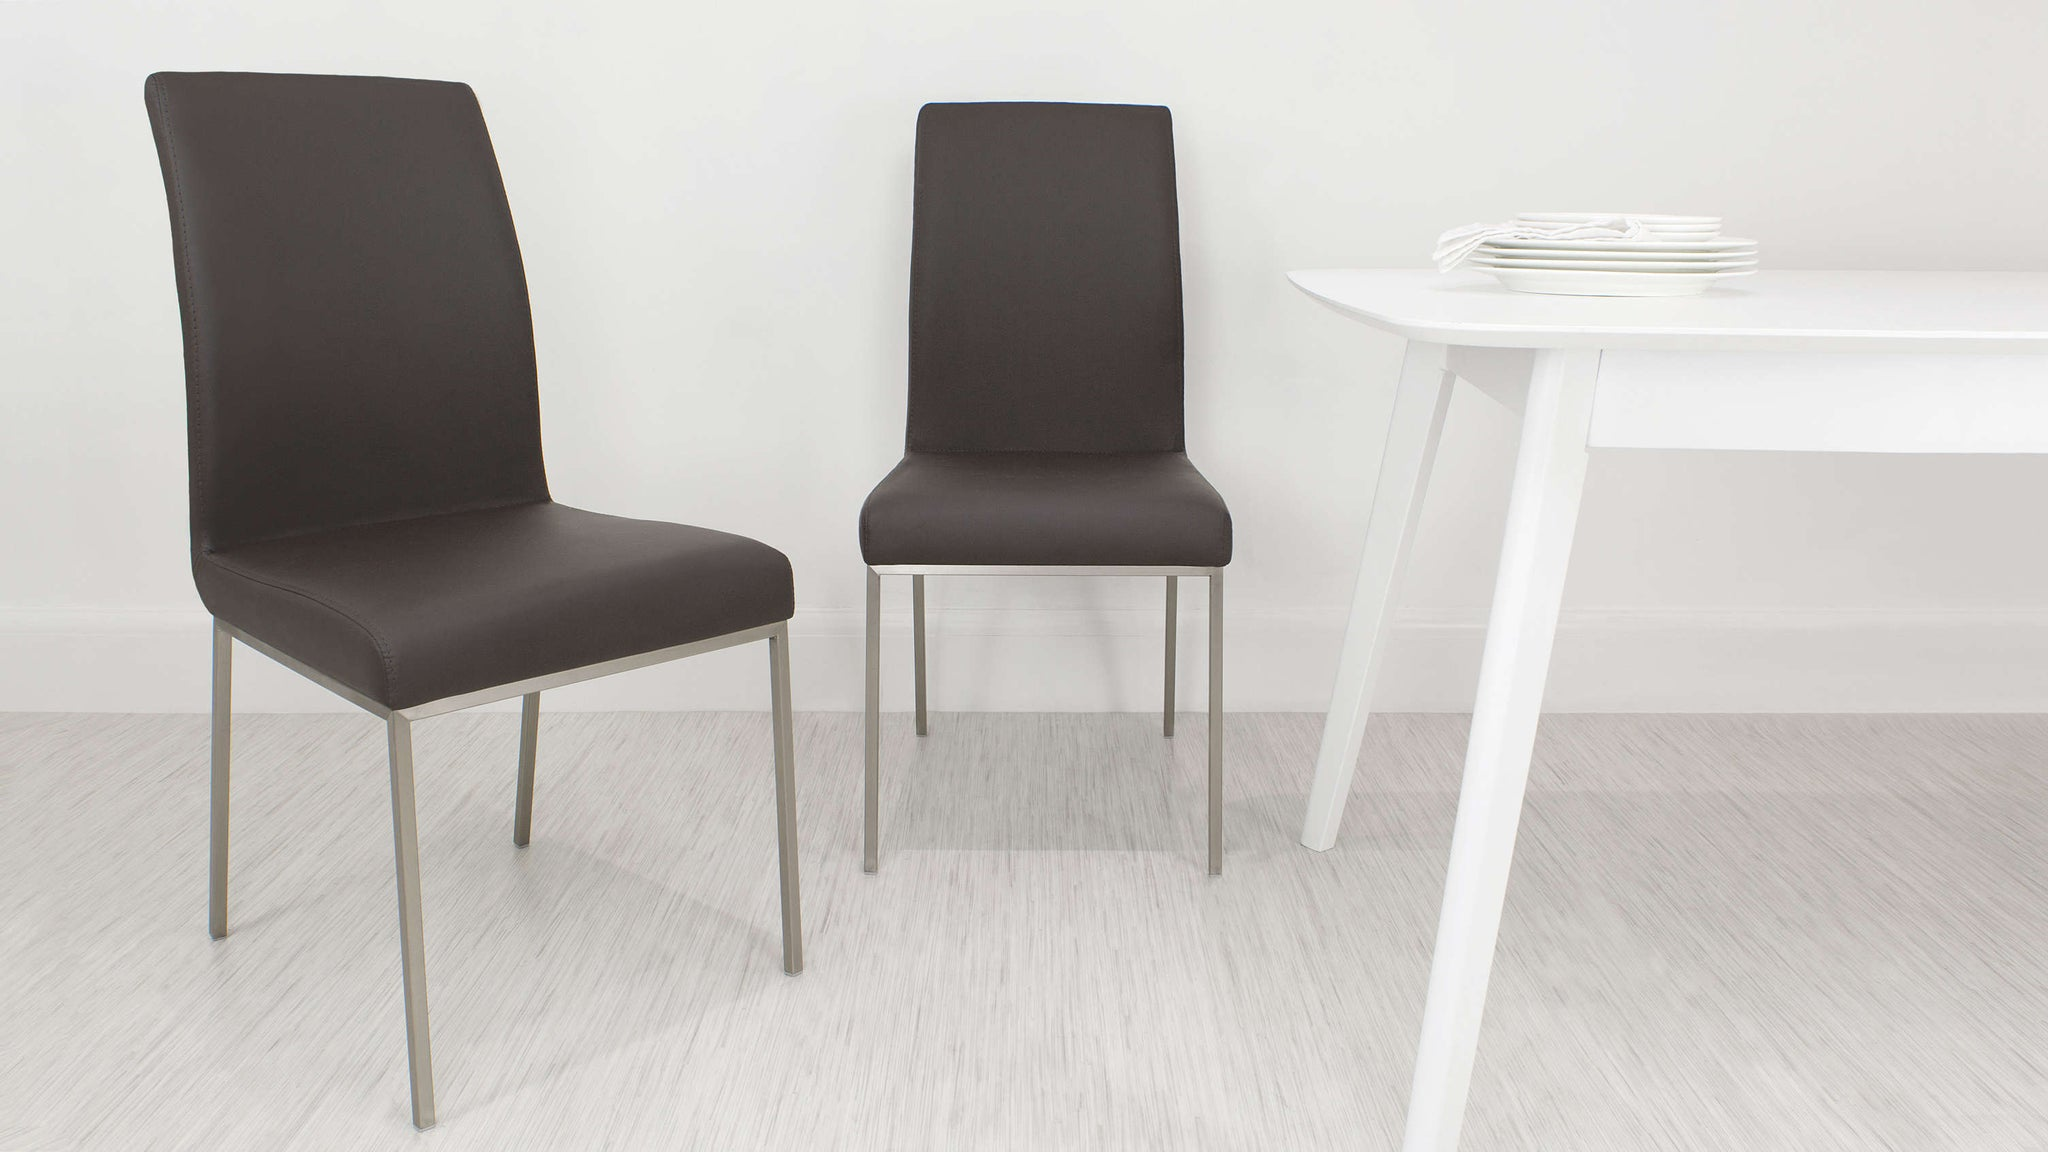 Brushed Metal Legged Dining Chair in Brown